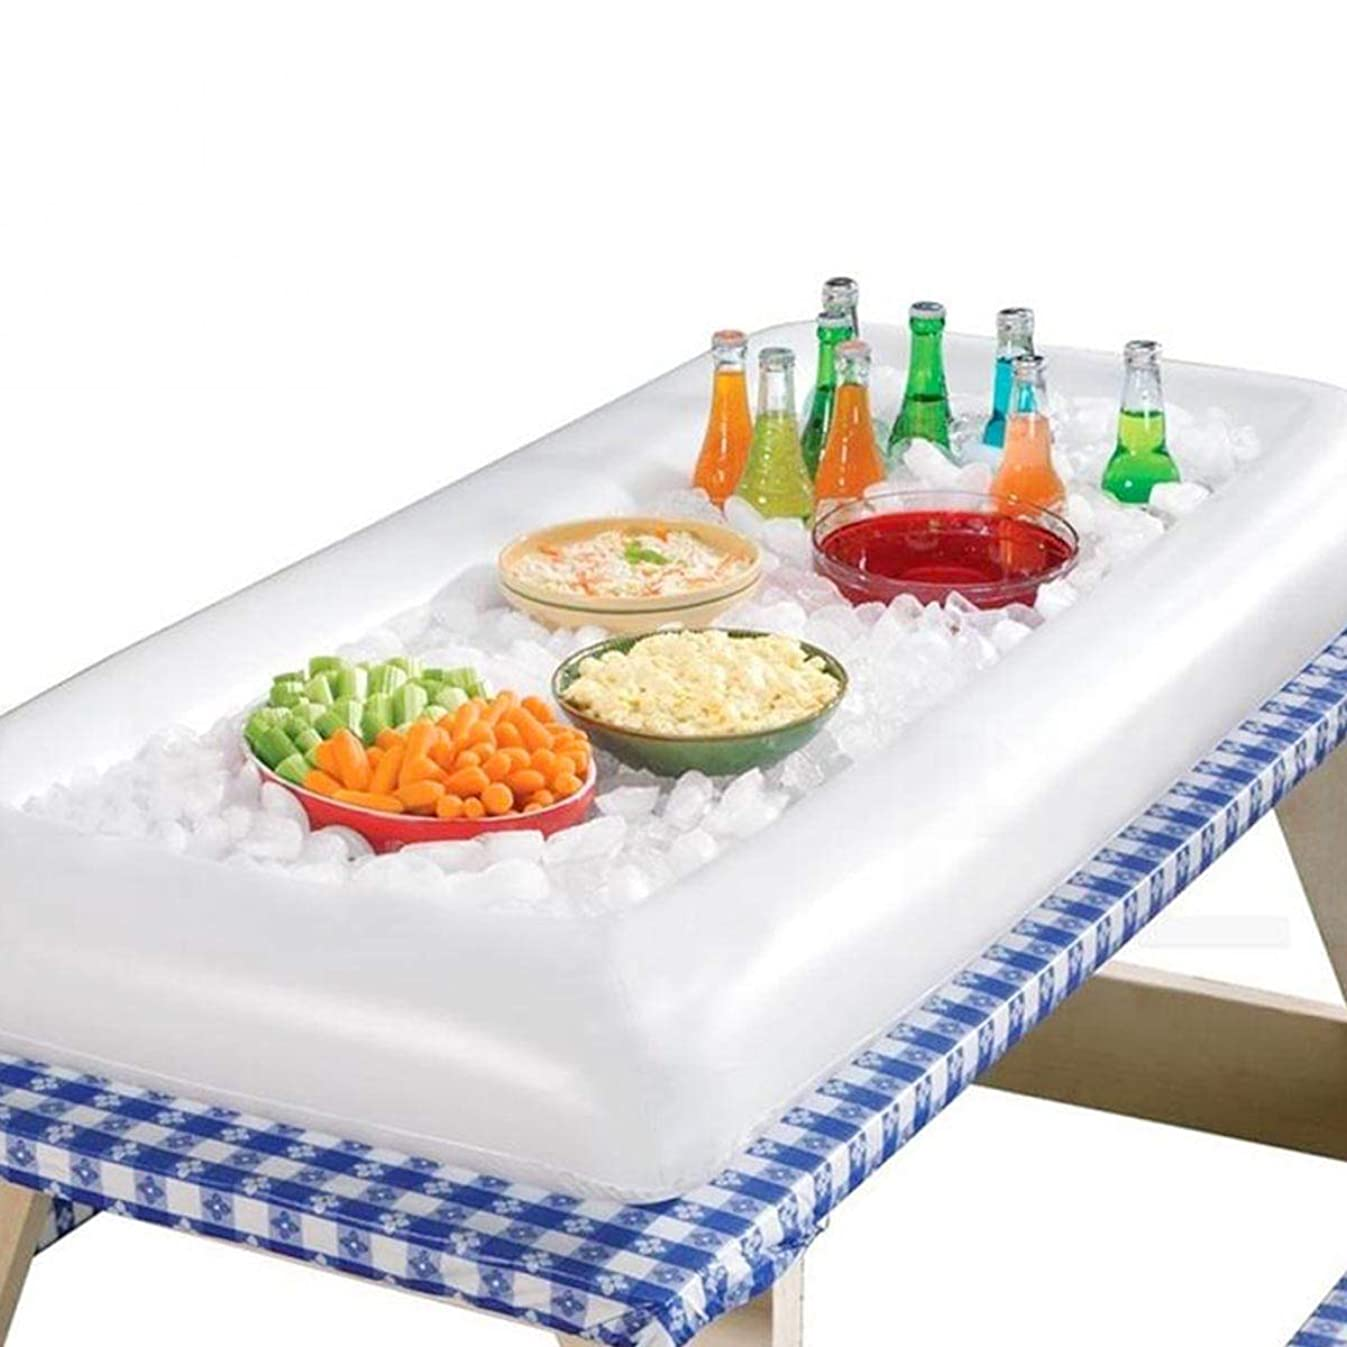 Solar Marine Inflatable Serving/Salad Bar Tray Food Drink Holder - BBQ Picnic Pool Party Buffet Luau Cooler, White, 53